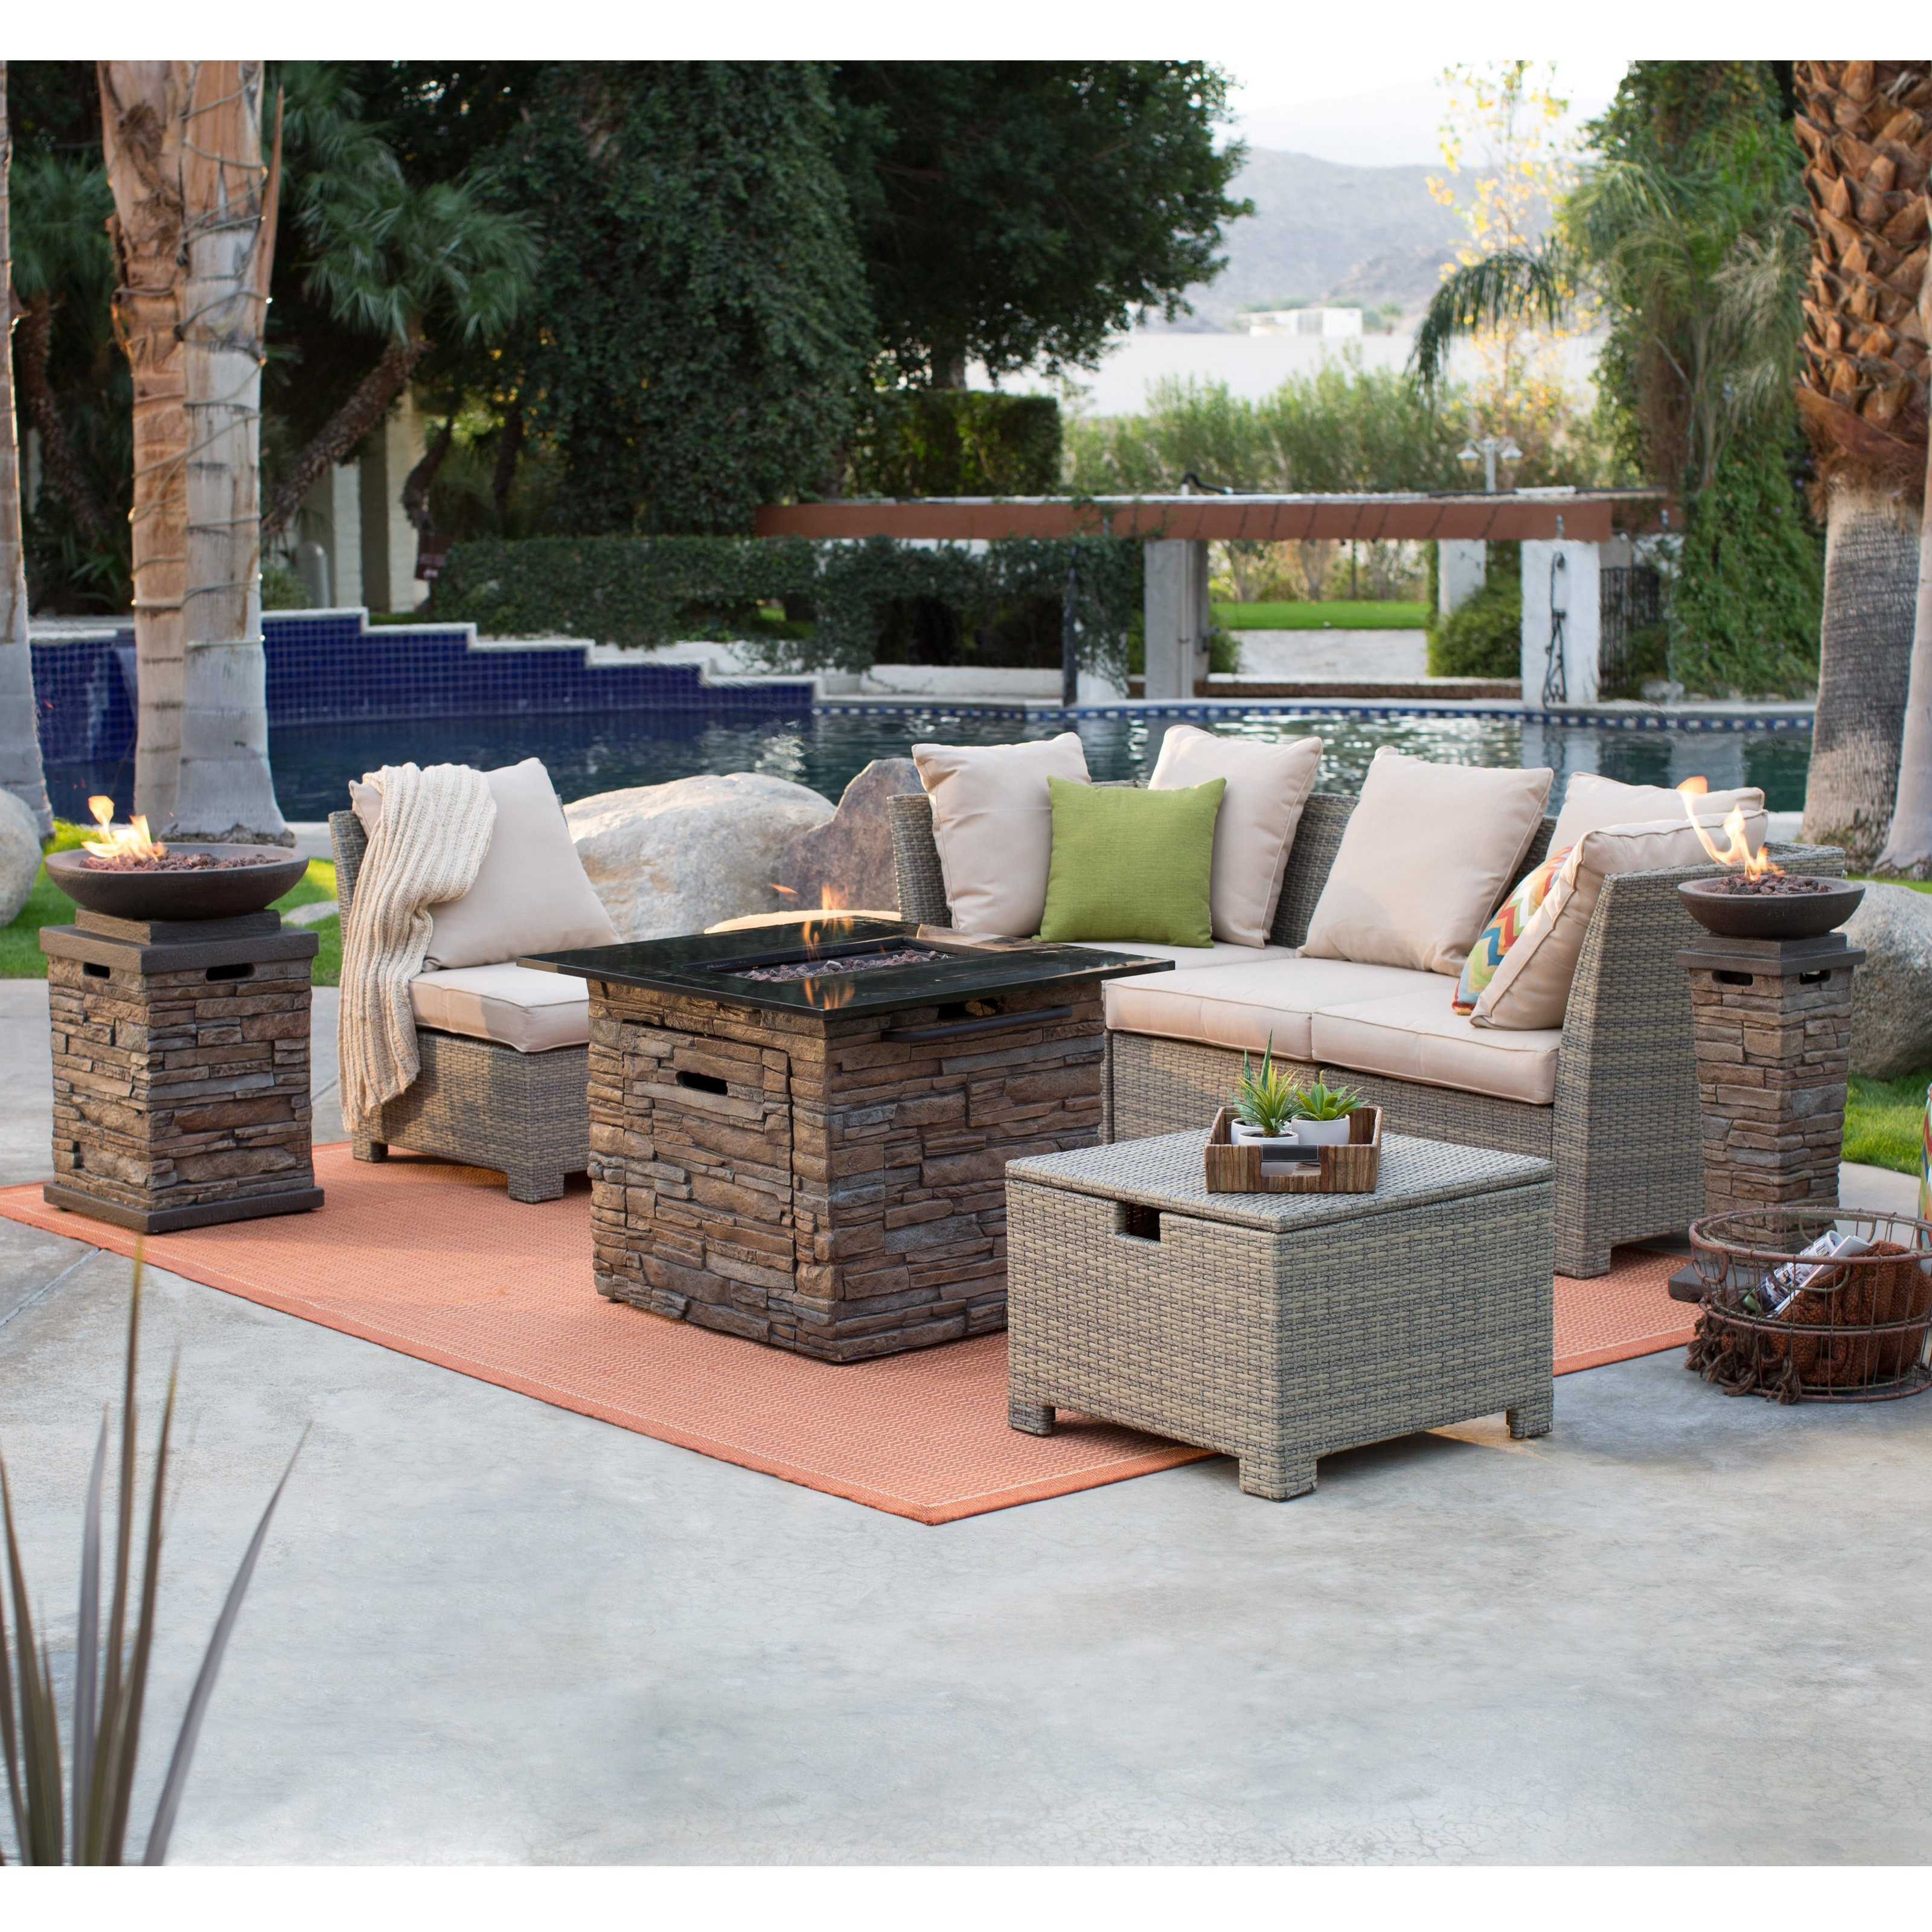 Preferred Unlimited Gas Fire Pit Conversation Set Fortune Outdoor Patio With With Regard To Patio Conversation Sets With Propane Fire Pit (View 3 of 20)